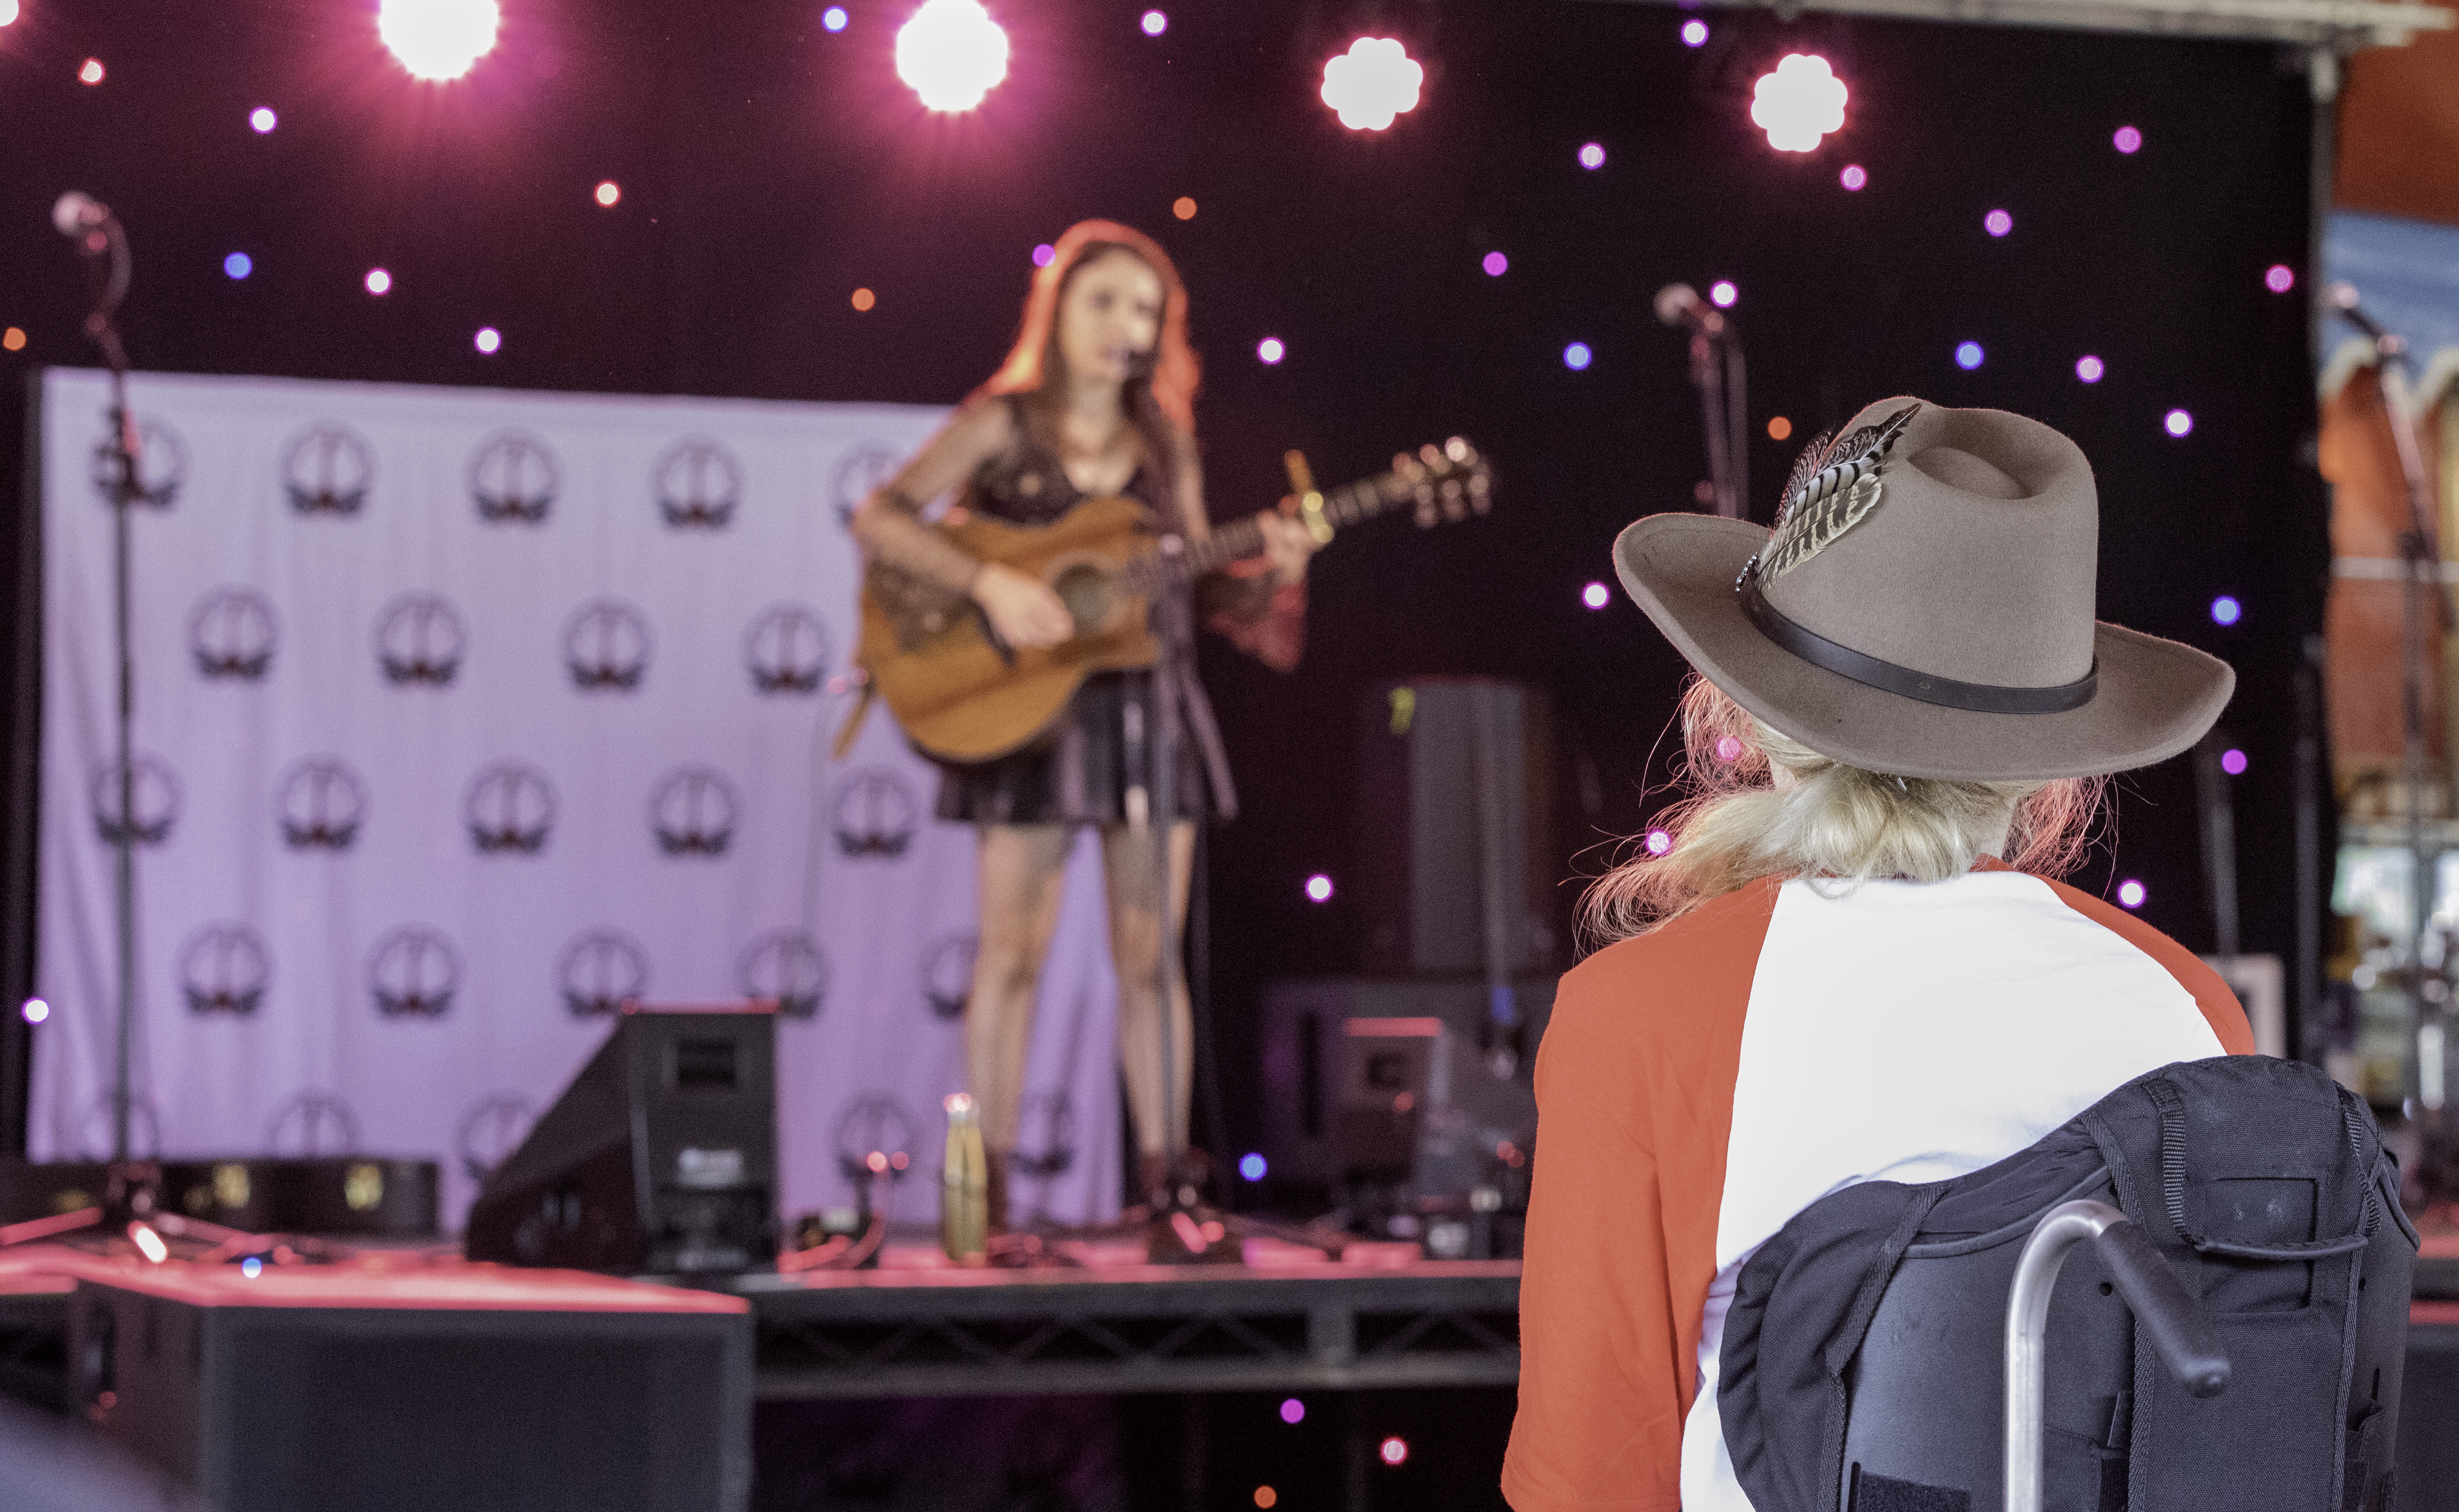 Roisin O'Hagan plays the CountryLine Homegrown Stage at Tennessee Fields Festival 2021